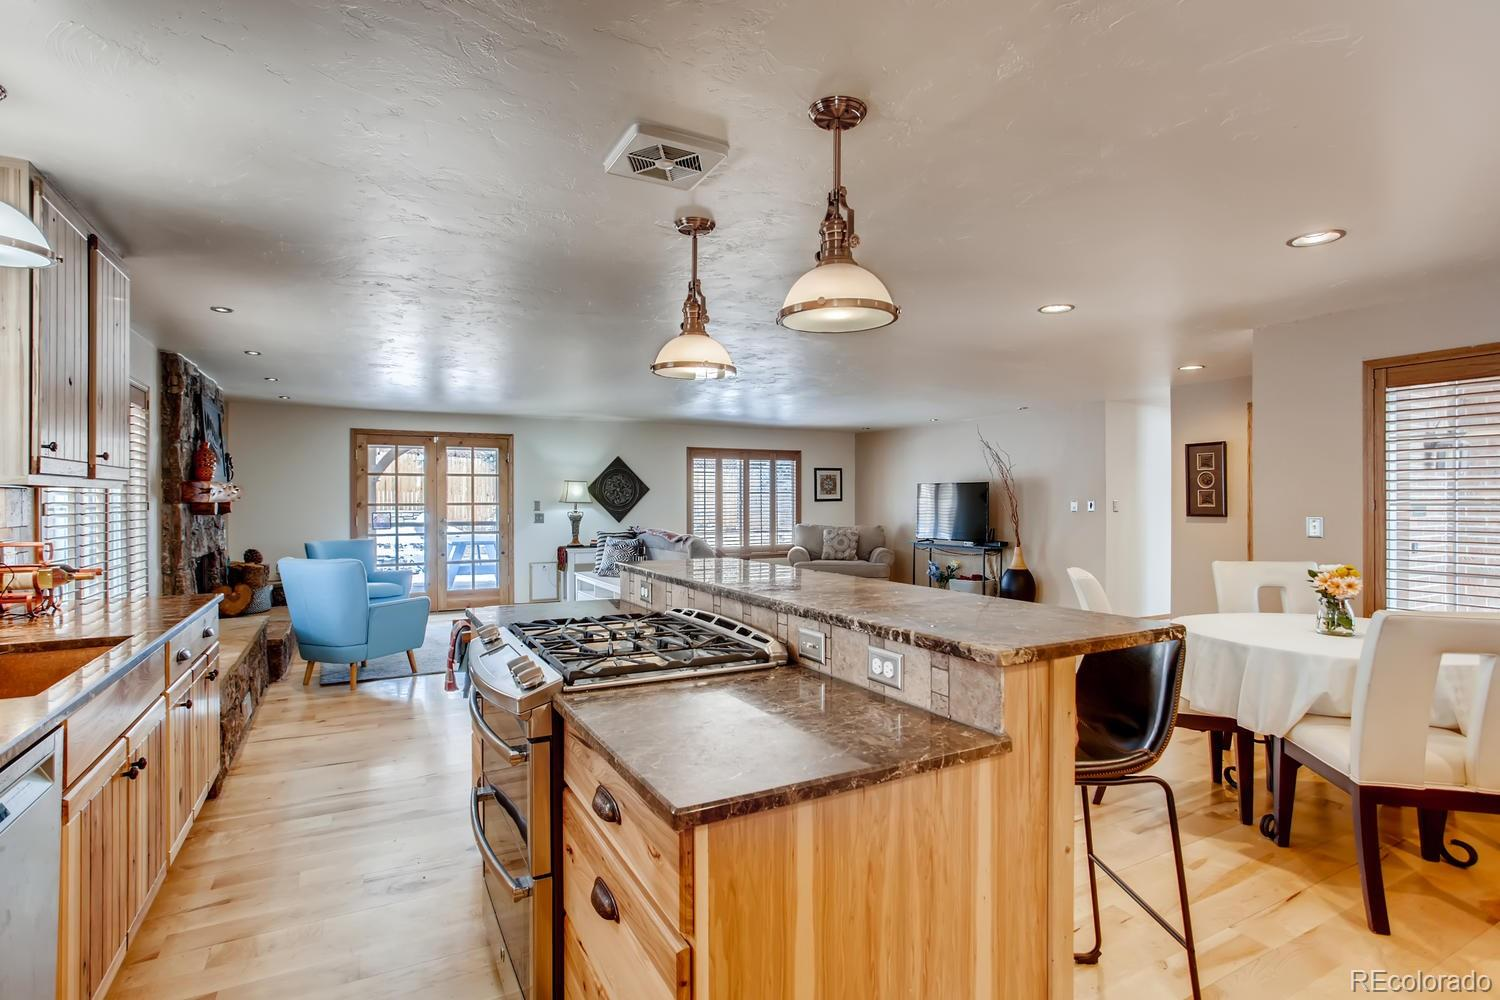 MLS# 4853831 - 3 - 13905 W 6th Place, Golden, CO 80401